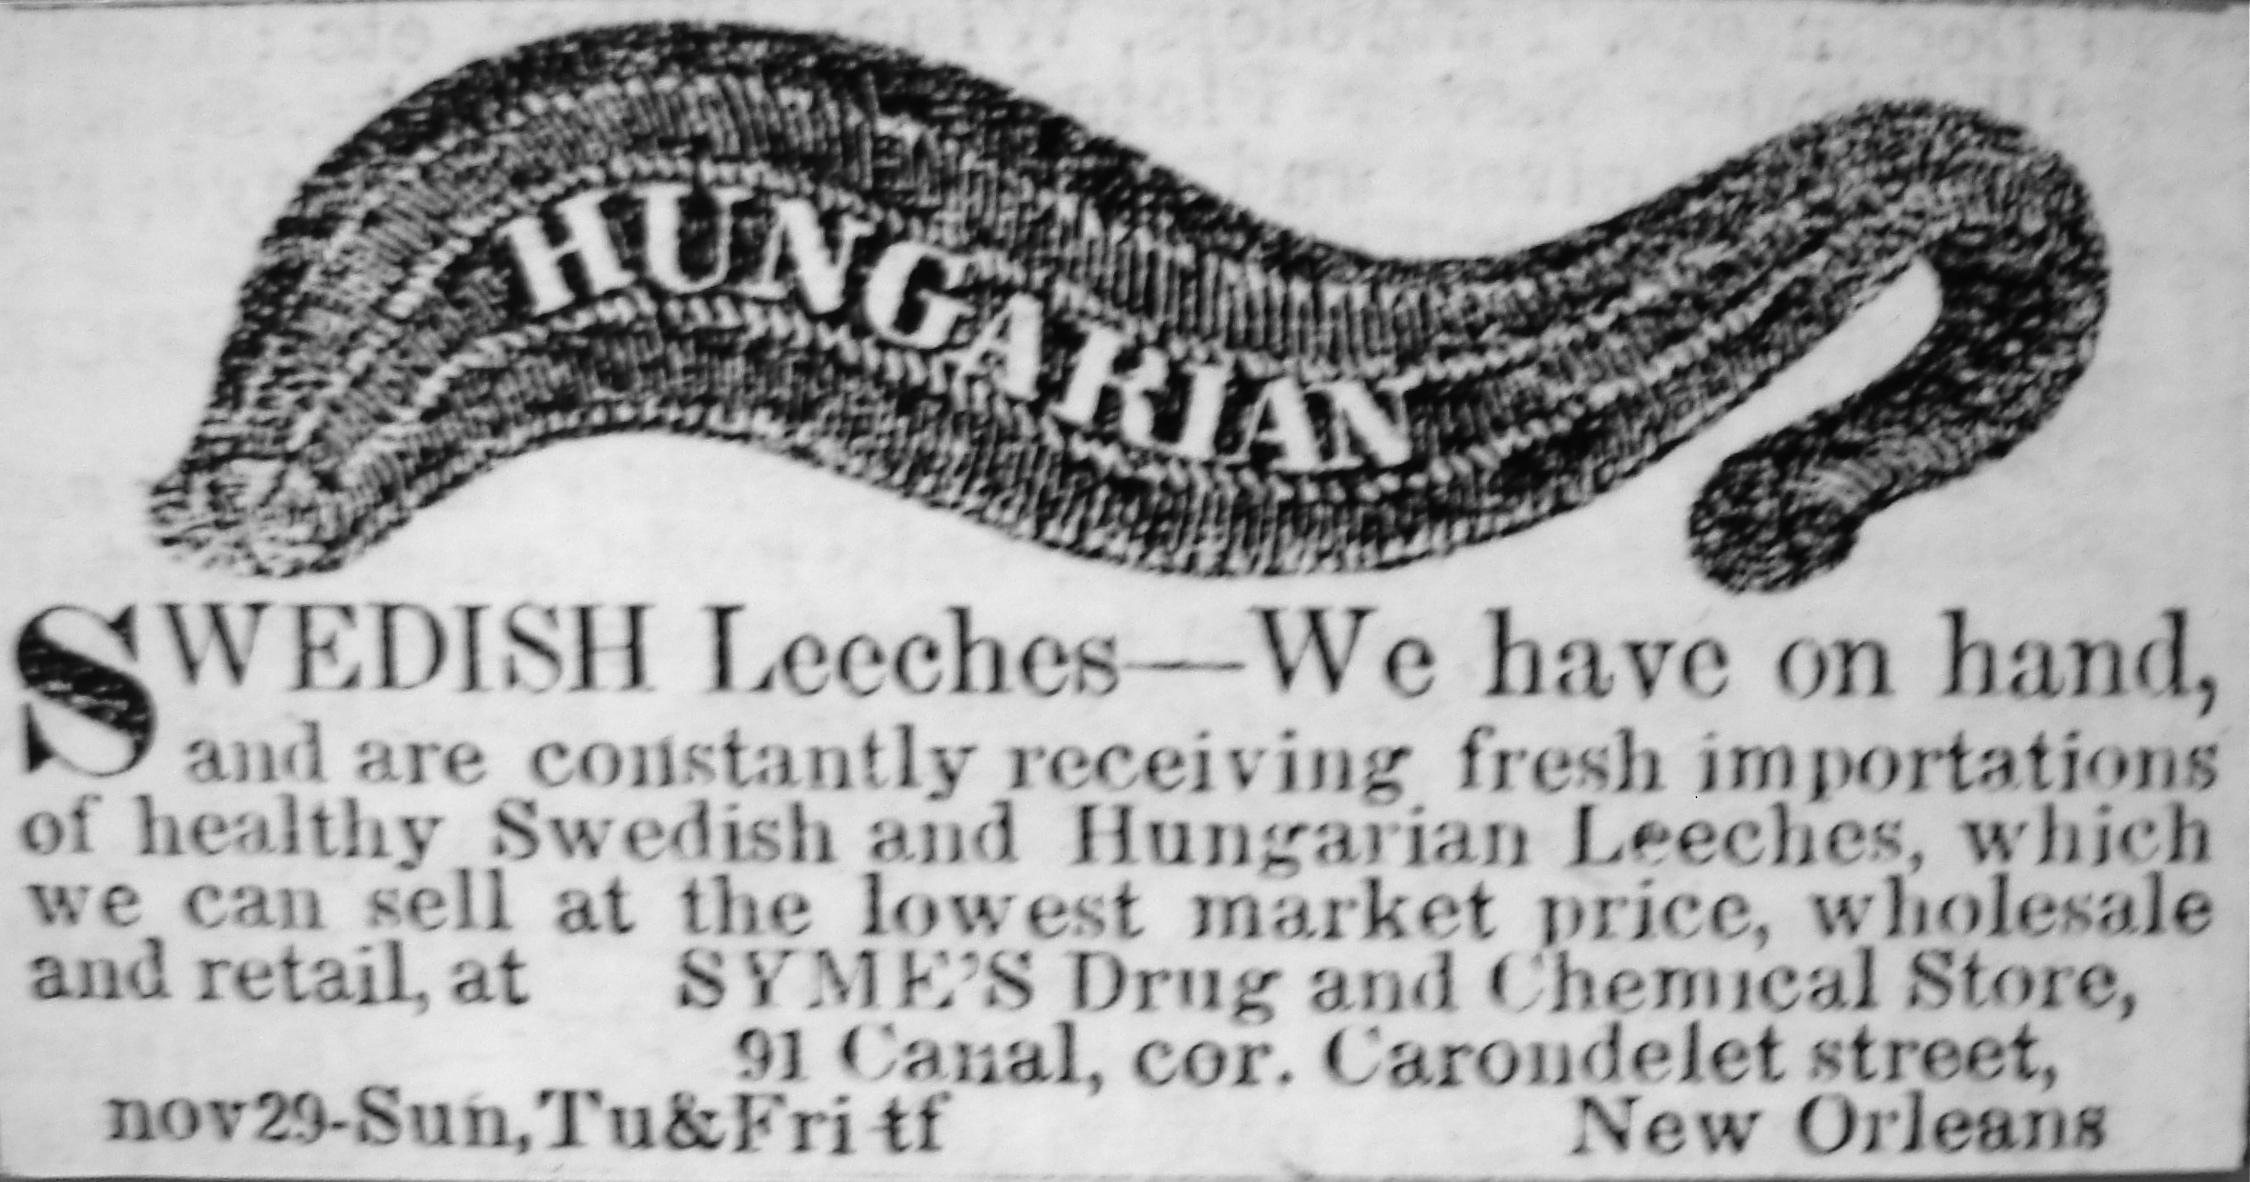 Hungarian_Leeches_New_Orleans_1852